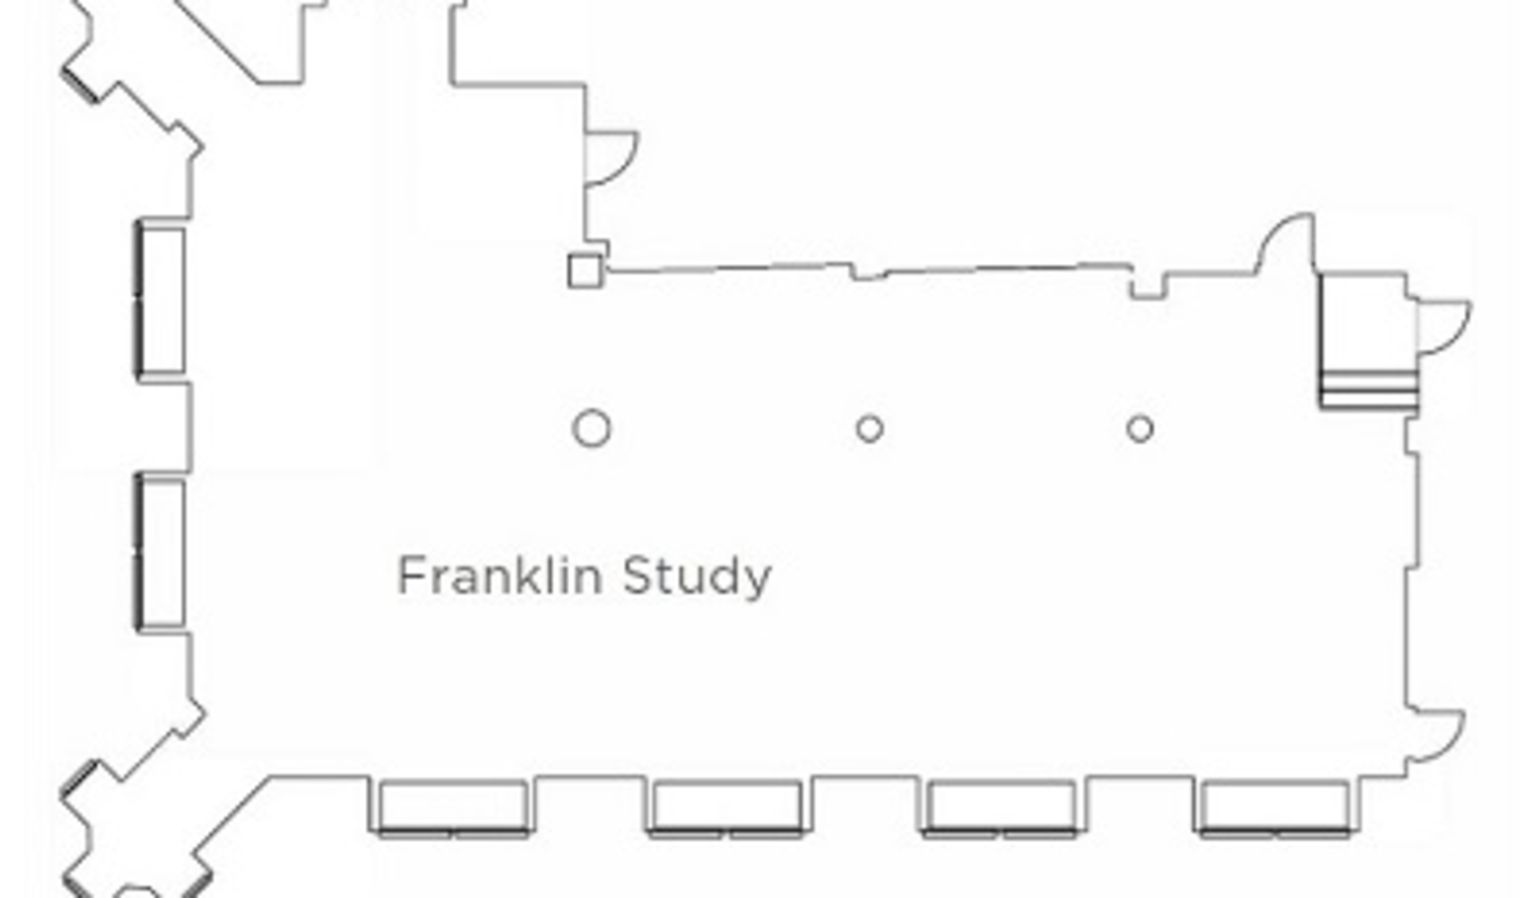 Franklin Study Floor Plan